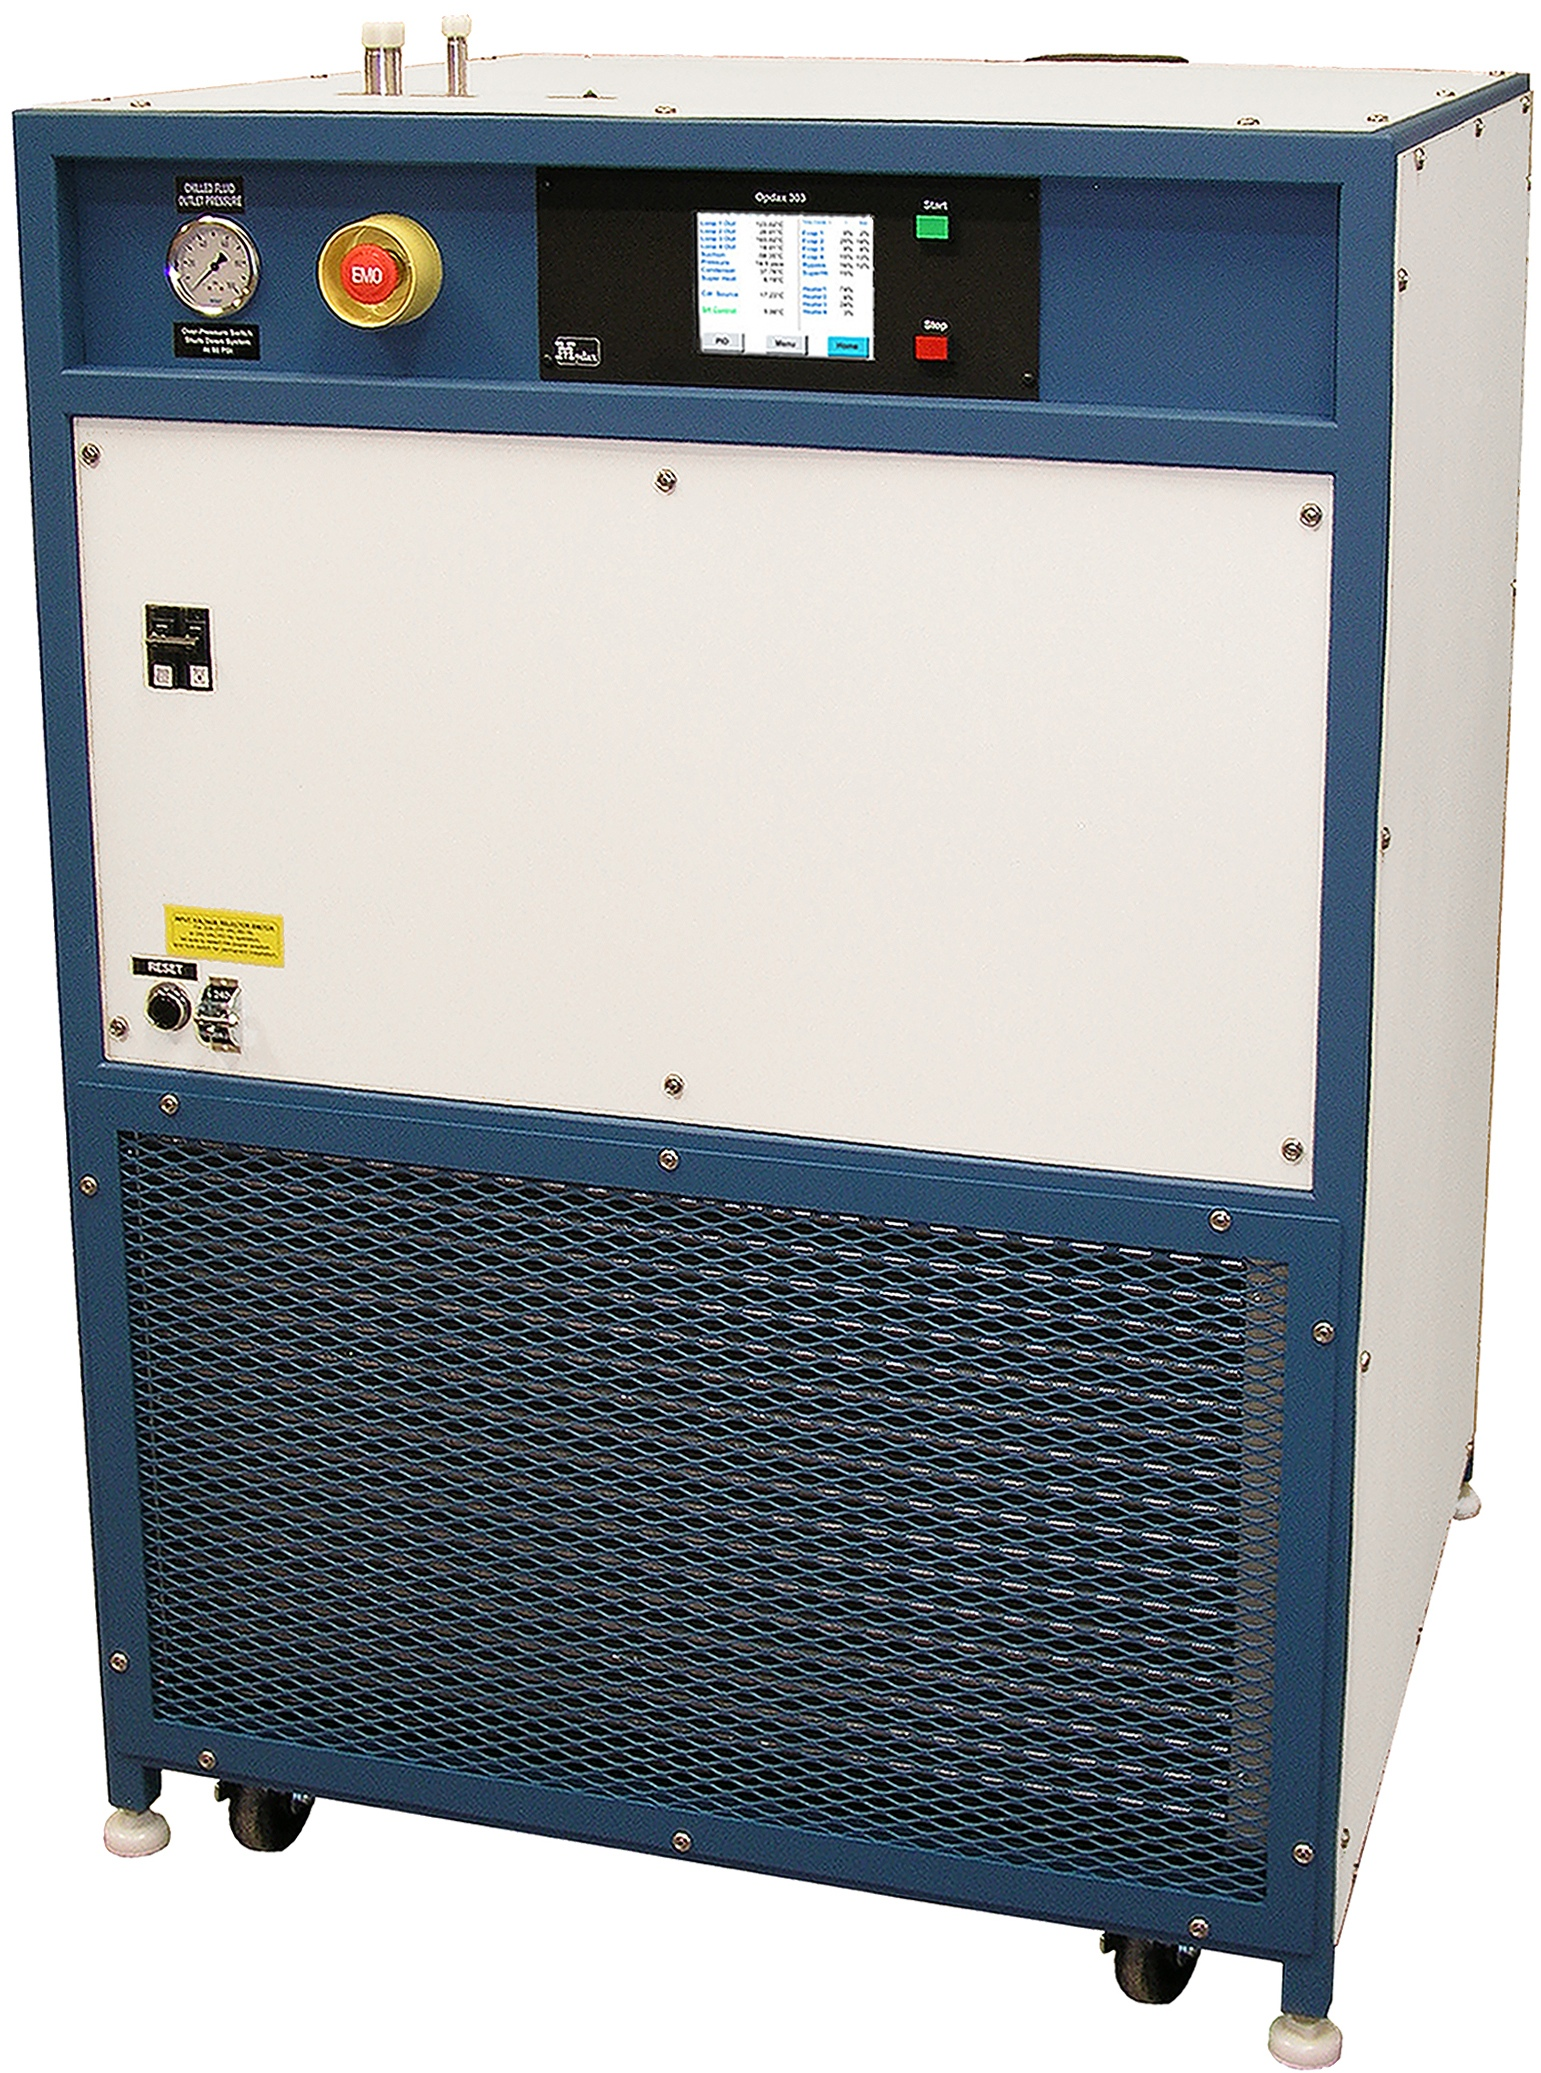 #A89523 The Elite Chiller System On The Market PECM Recommended 1907 Chiller Manufacturers In Usa pics with 1541x2073 px on helpvideos.info - Air Conditioners, Air Coolers and more